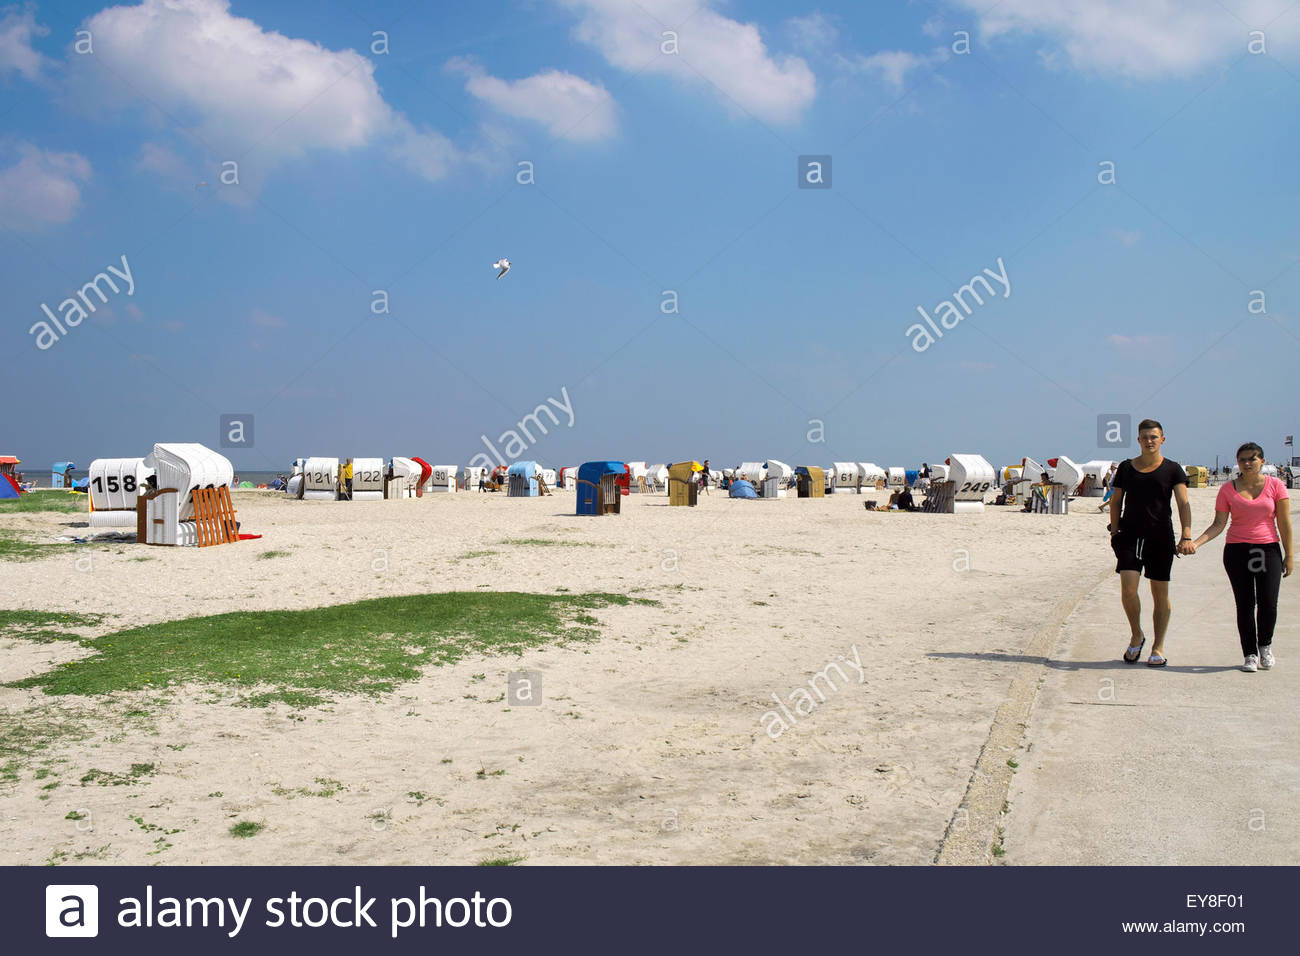 A couple walks by Strandkörbe, or beach chairs, in Schillig, Wangerland, Germany. - Stock Image